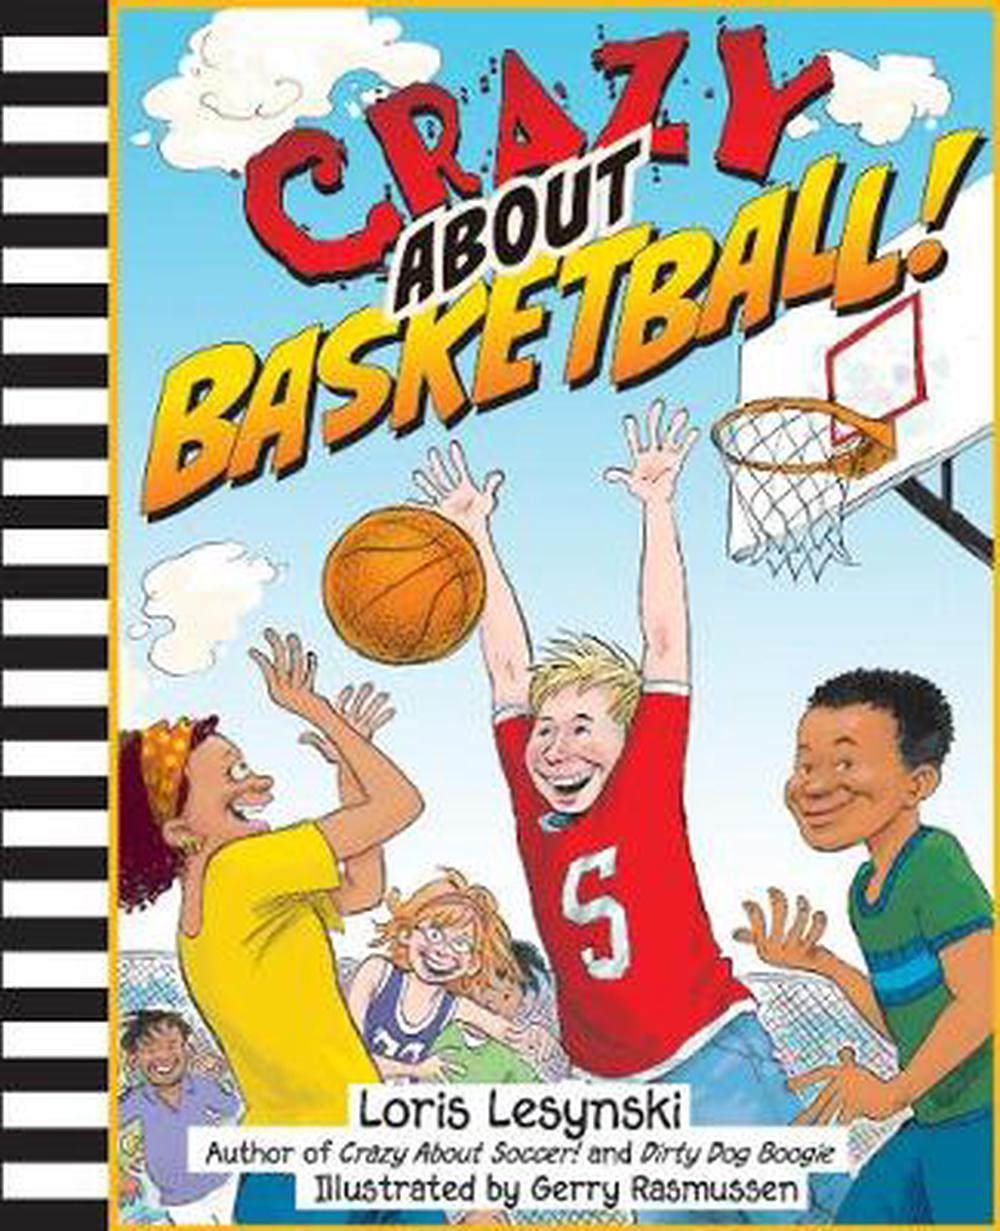 Crazy about Basketball! by Loris Lesynski (English) Paperback Book Free Shipping